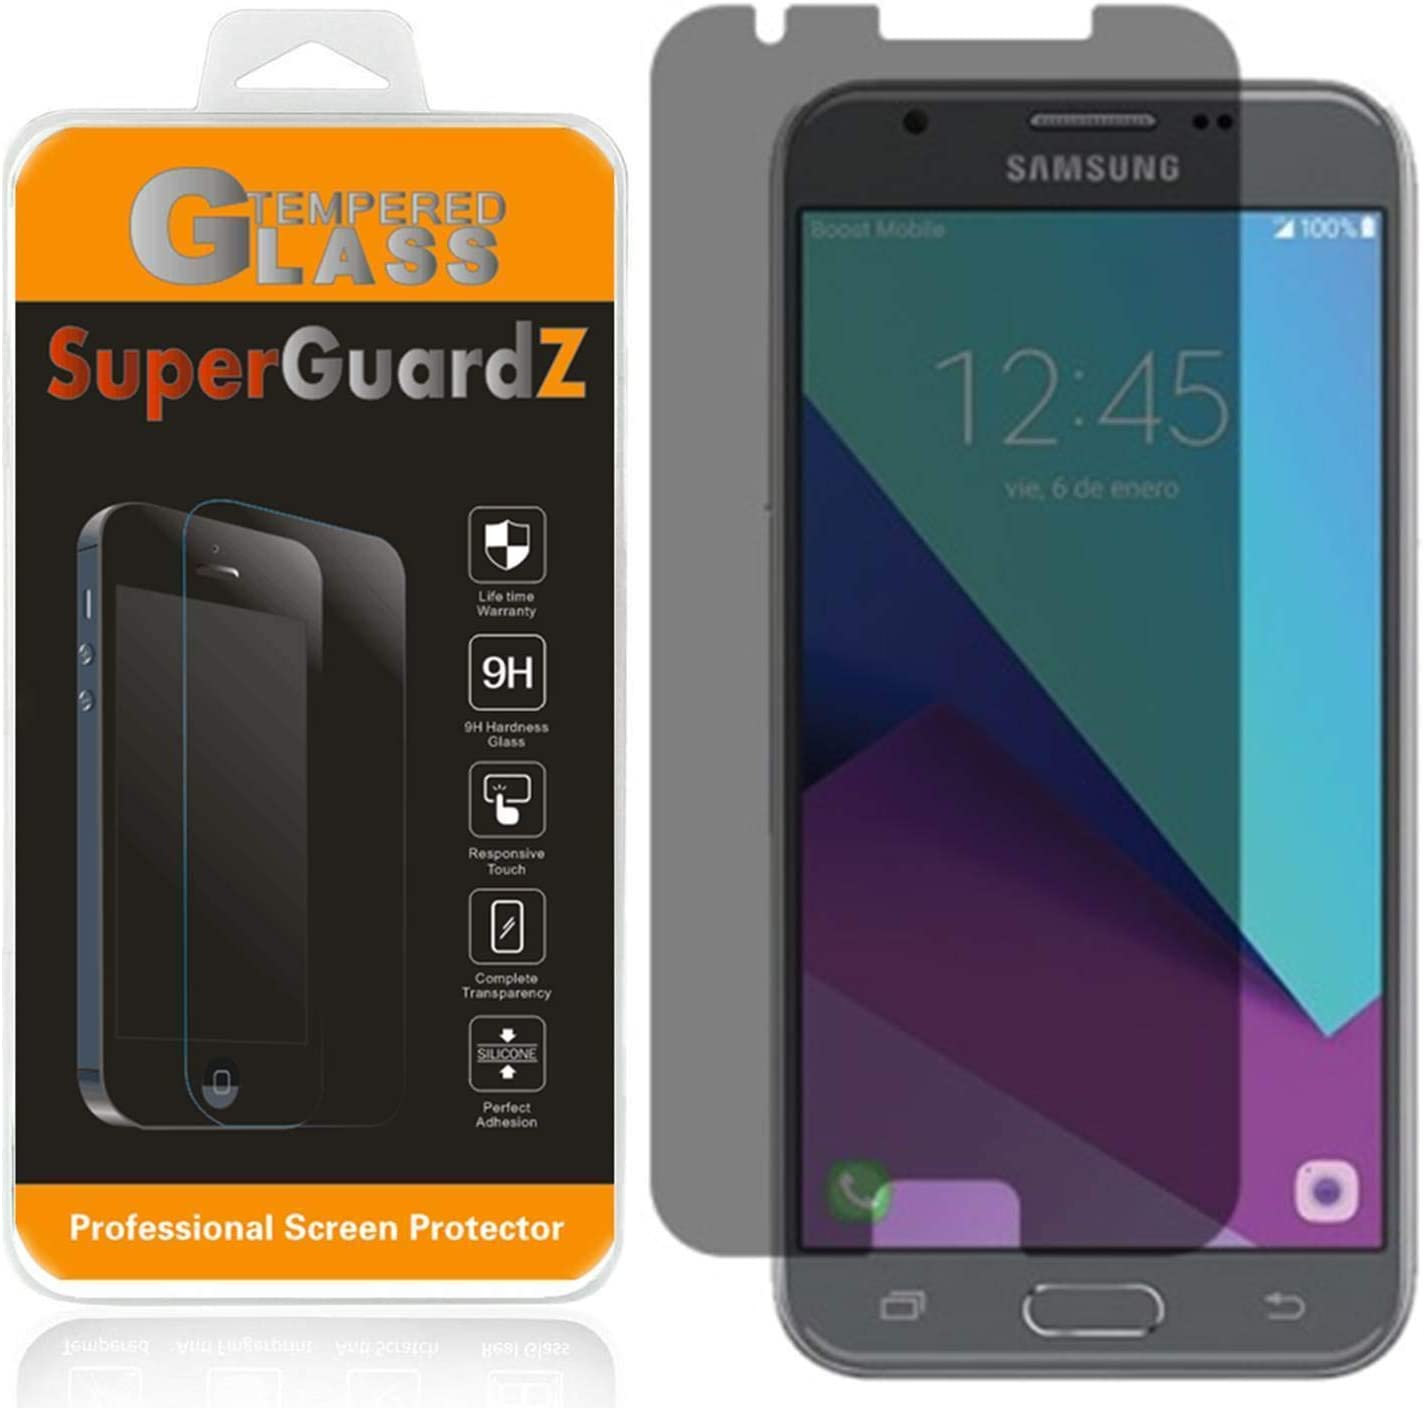 for Samsung Galaxy J3 Eclipse 2 / J3 (2017) Tempered Glass Screen Protector [Privacy Anti-Spy], SuperGuardZ, 9H Anti-Scratch, Anti-Bubble [Lifetime Replacements]